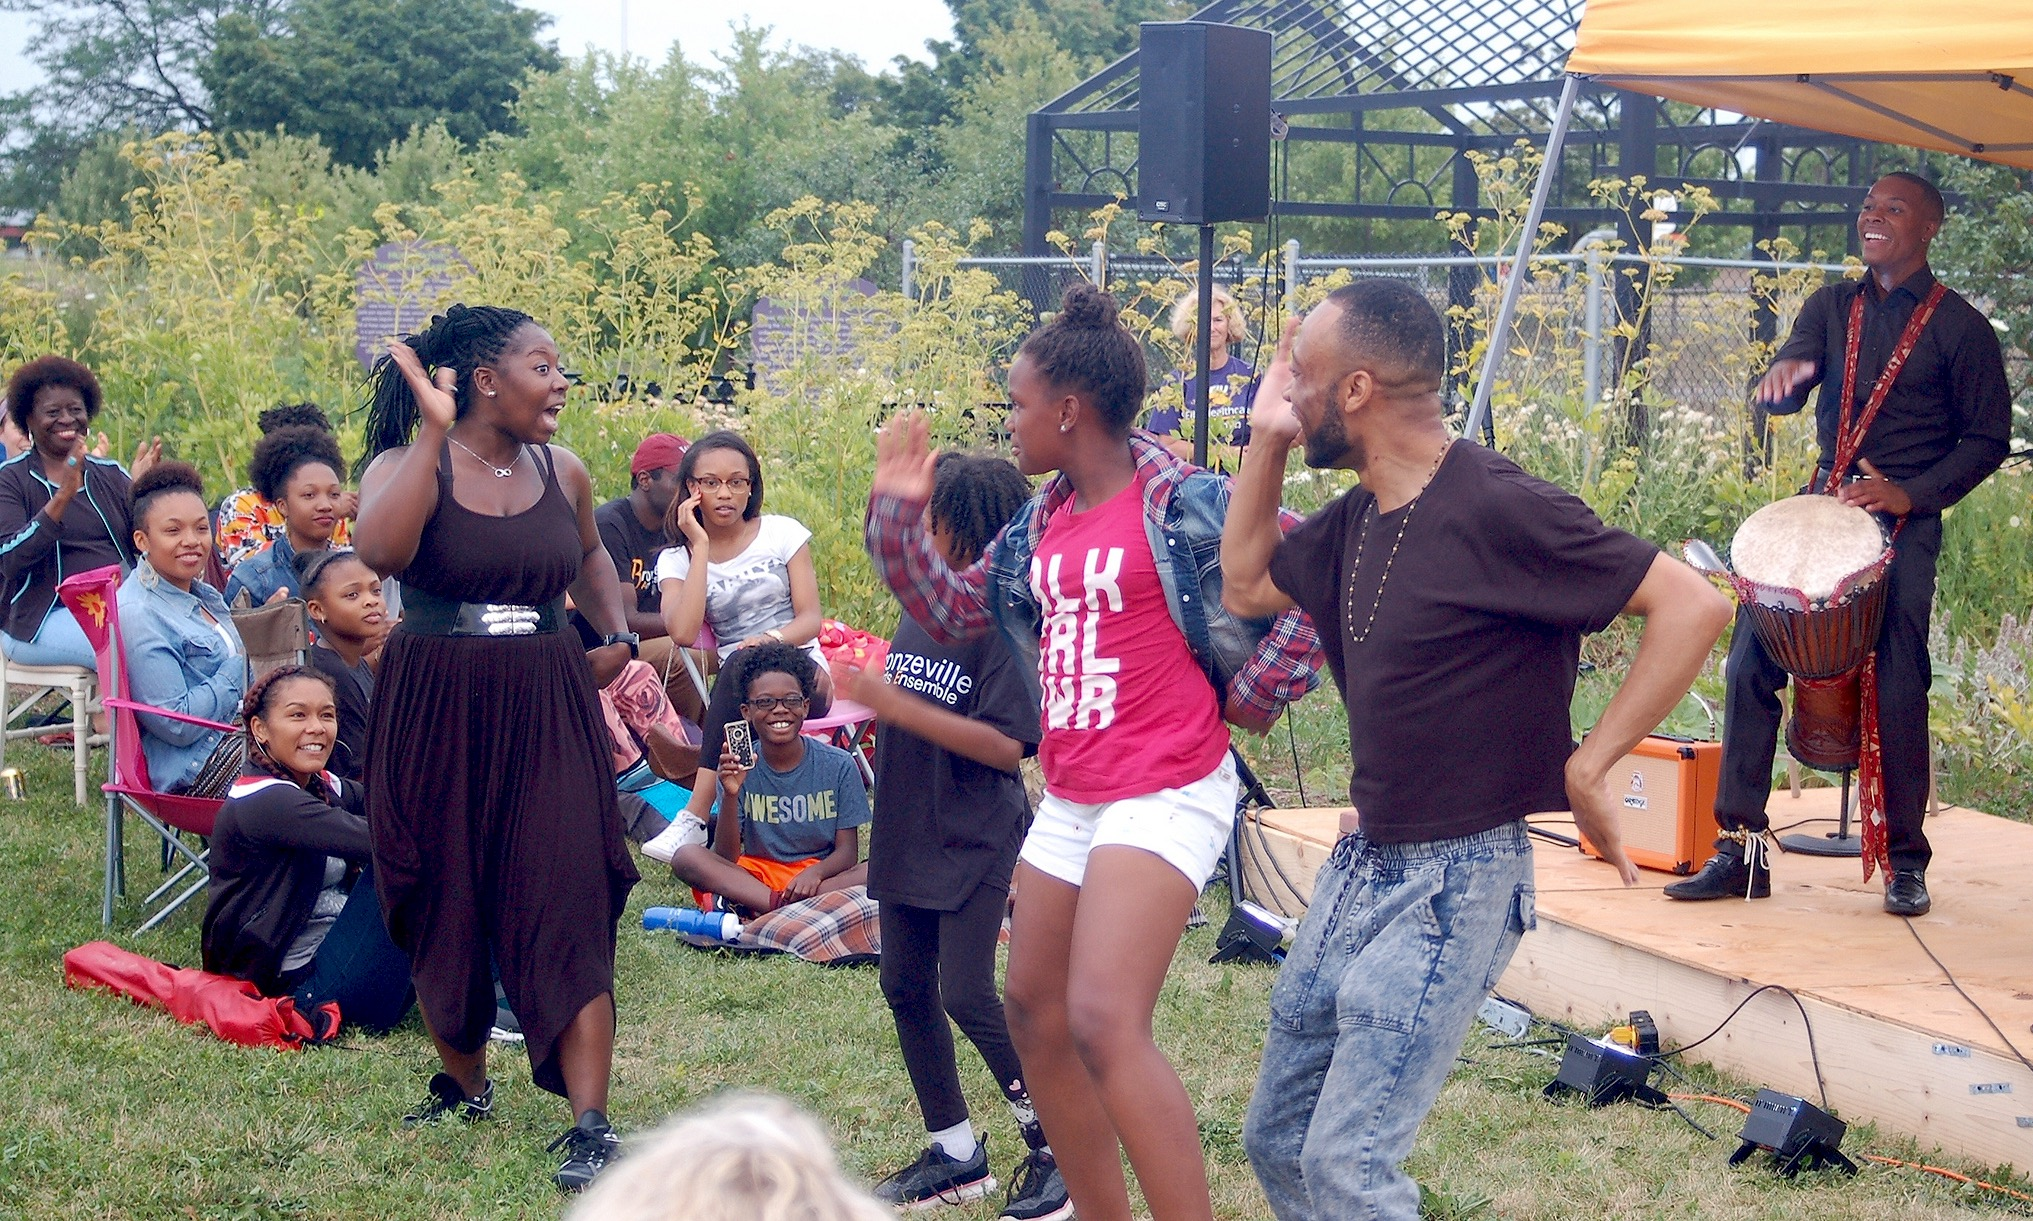 Members of the Ko-Thi Dance Company invite audience members to participate in their performance at Alice's Garden. (Photo by Andrea Waxman)